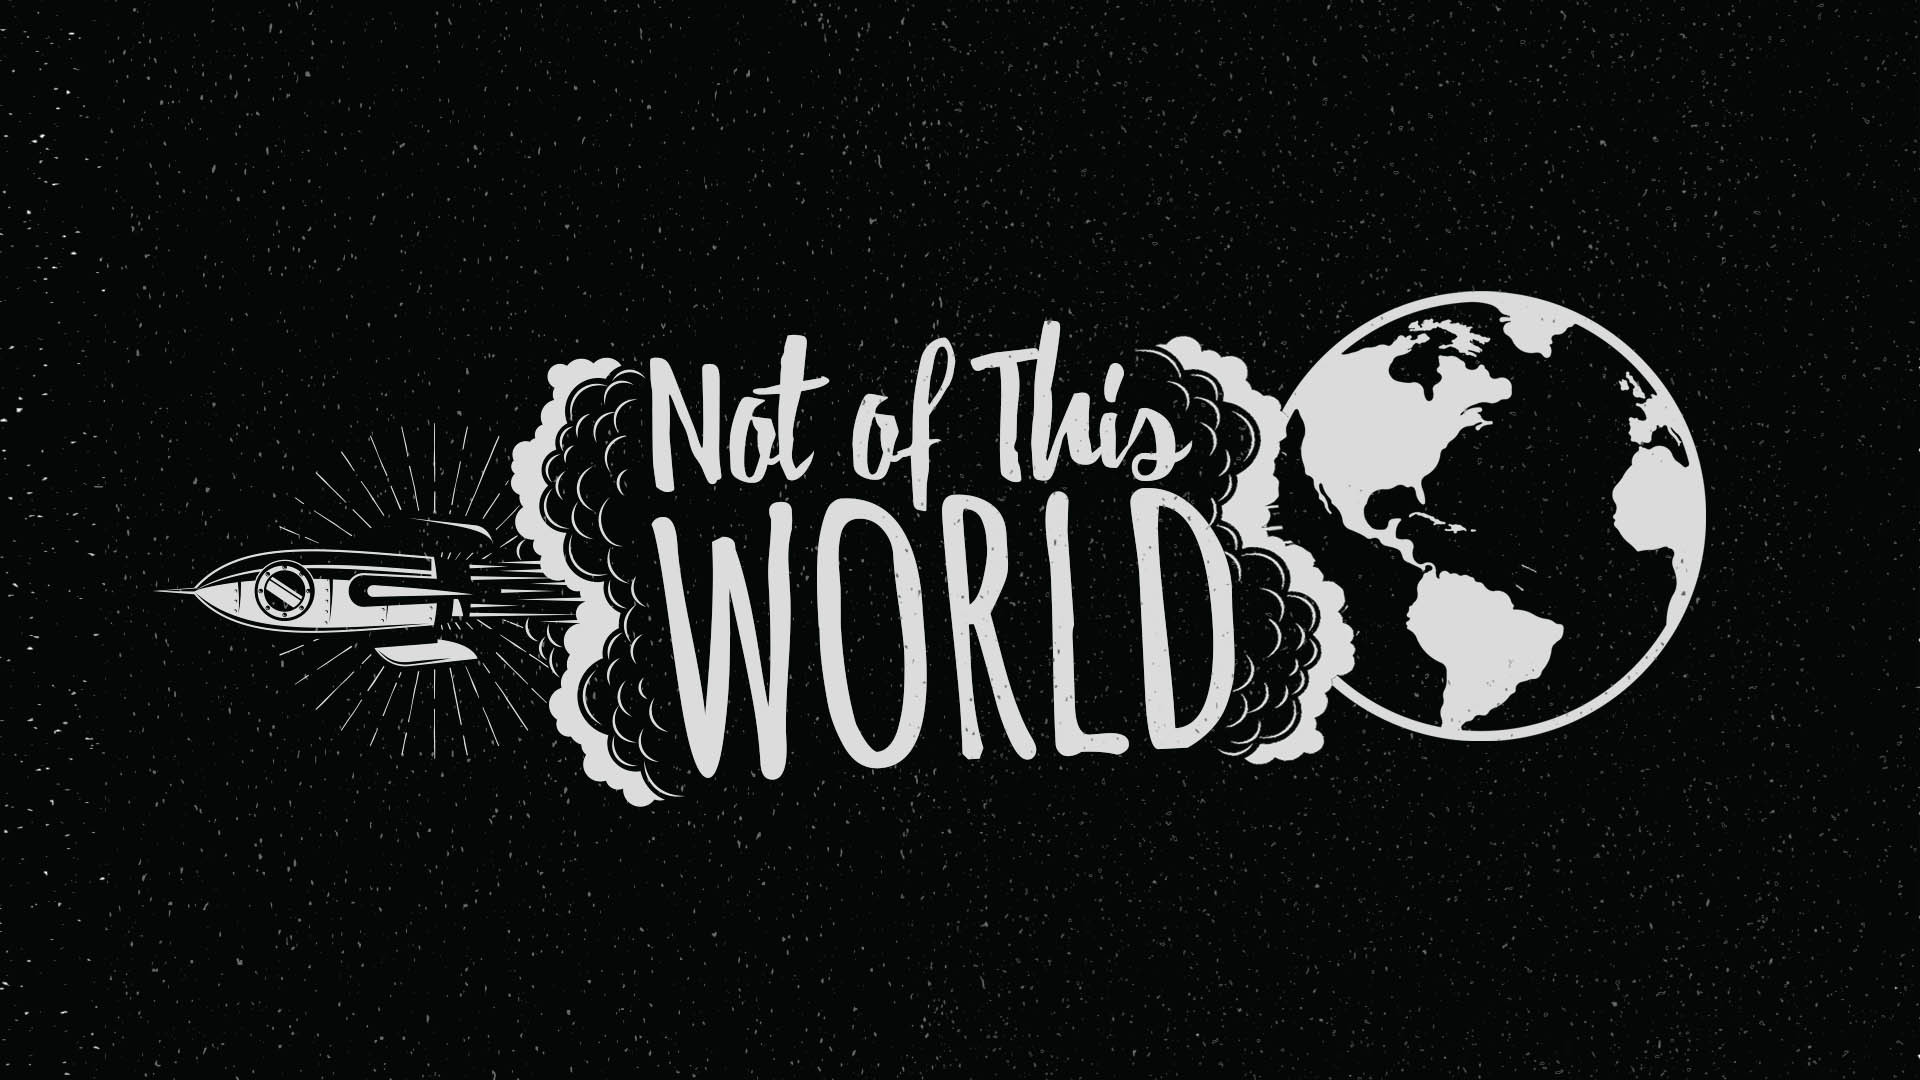 Res: 1920x1080, We Are Not of This World